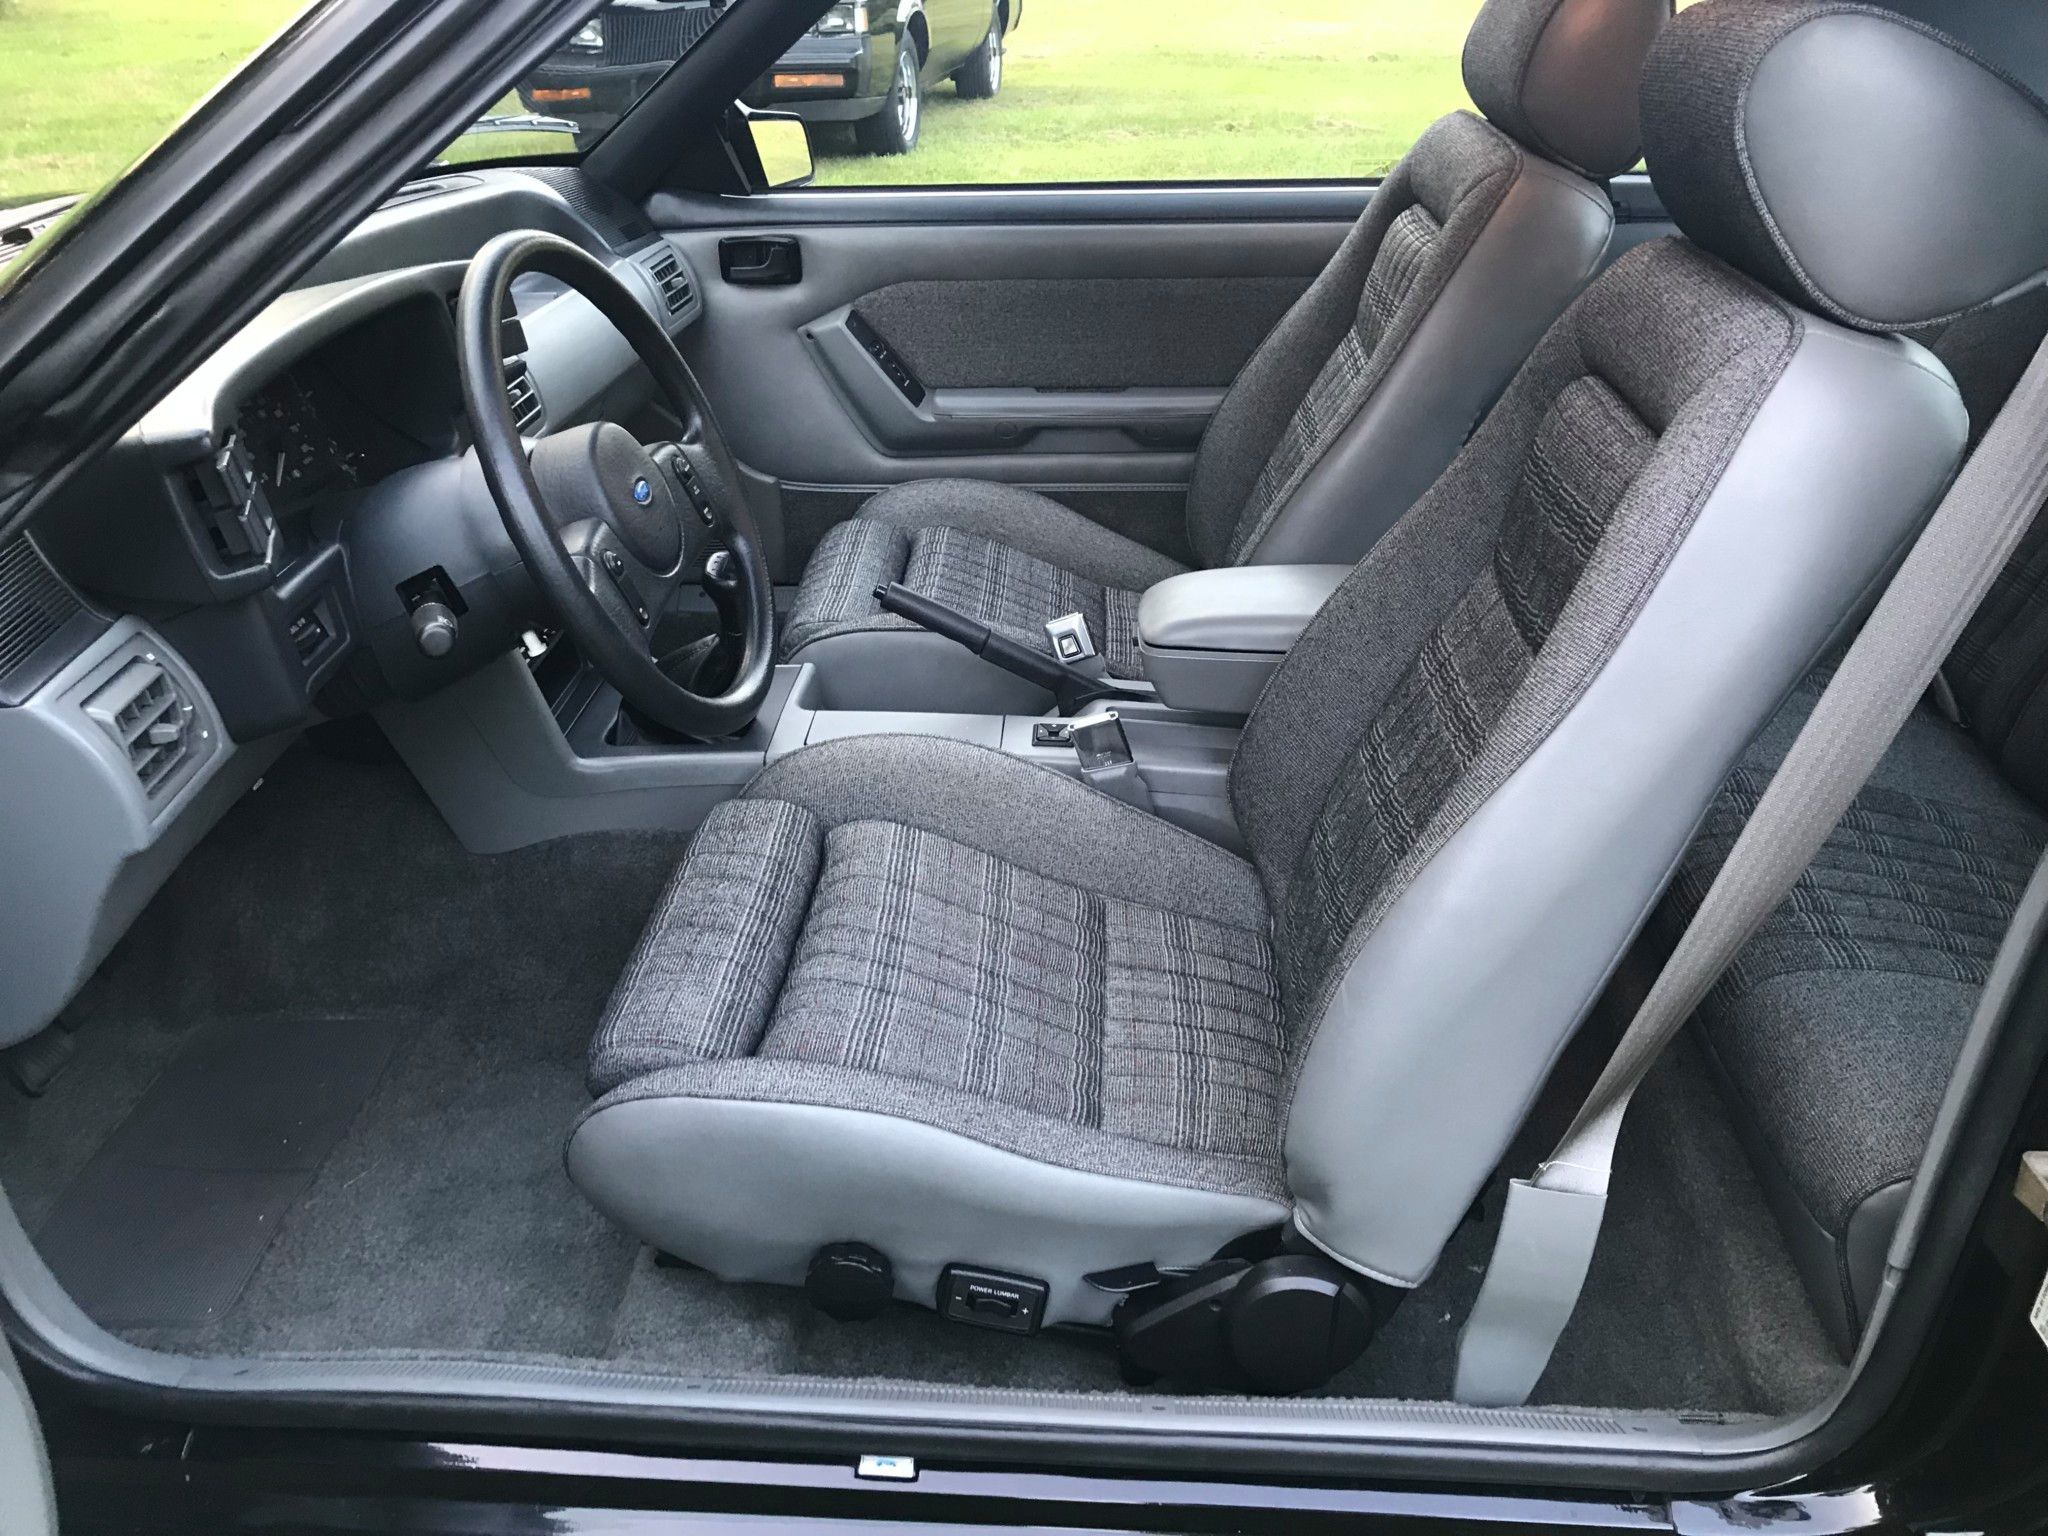 8k Mile 1987 Ford Mustang Gt 5 0 5 Speed Mustang Lx Ford Mustang Gt Mustang Gt